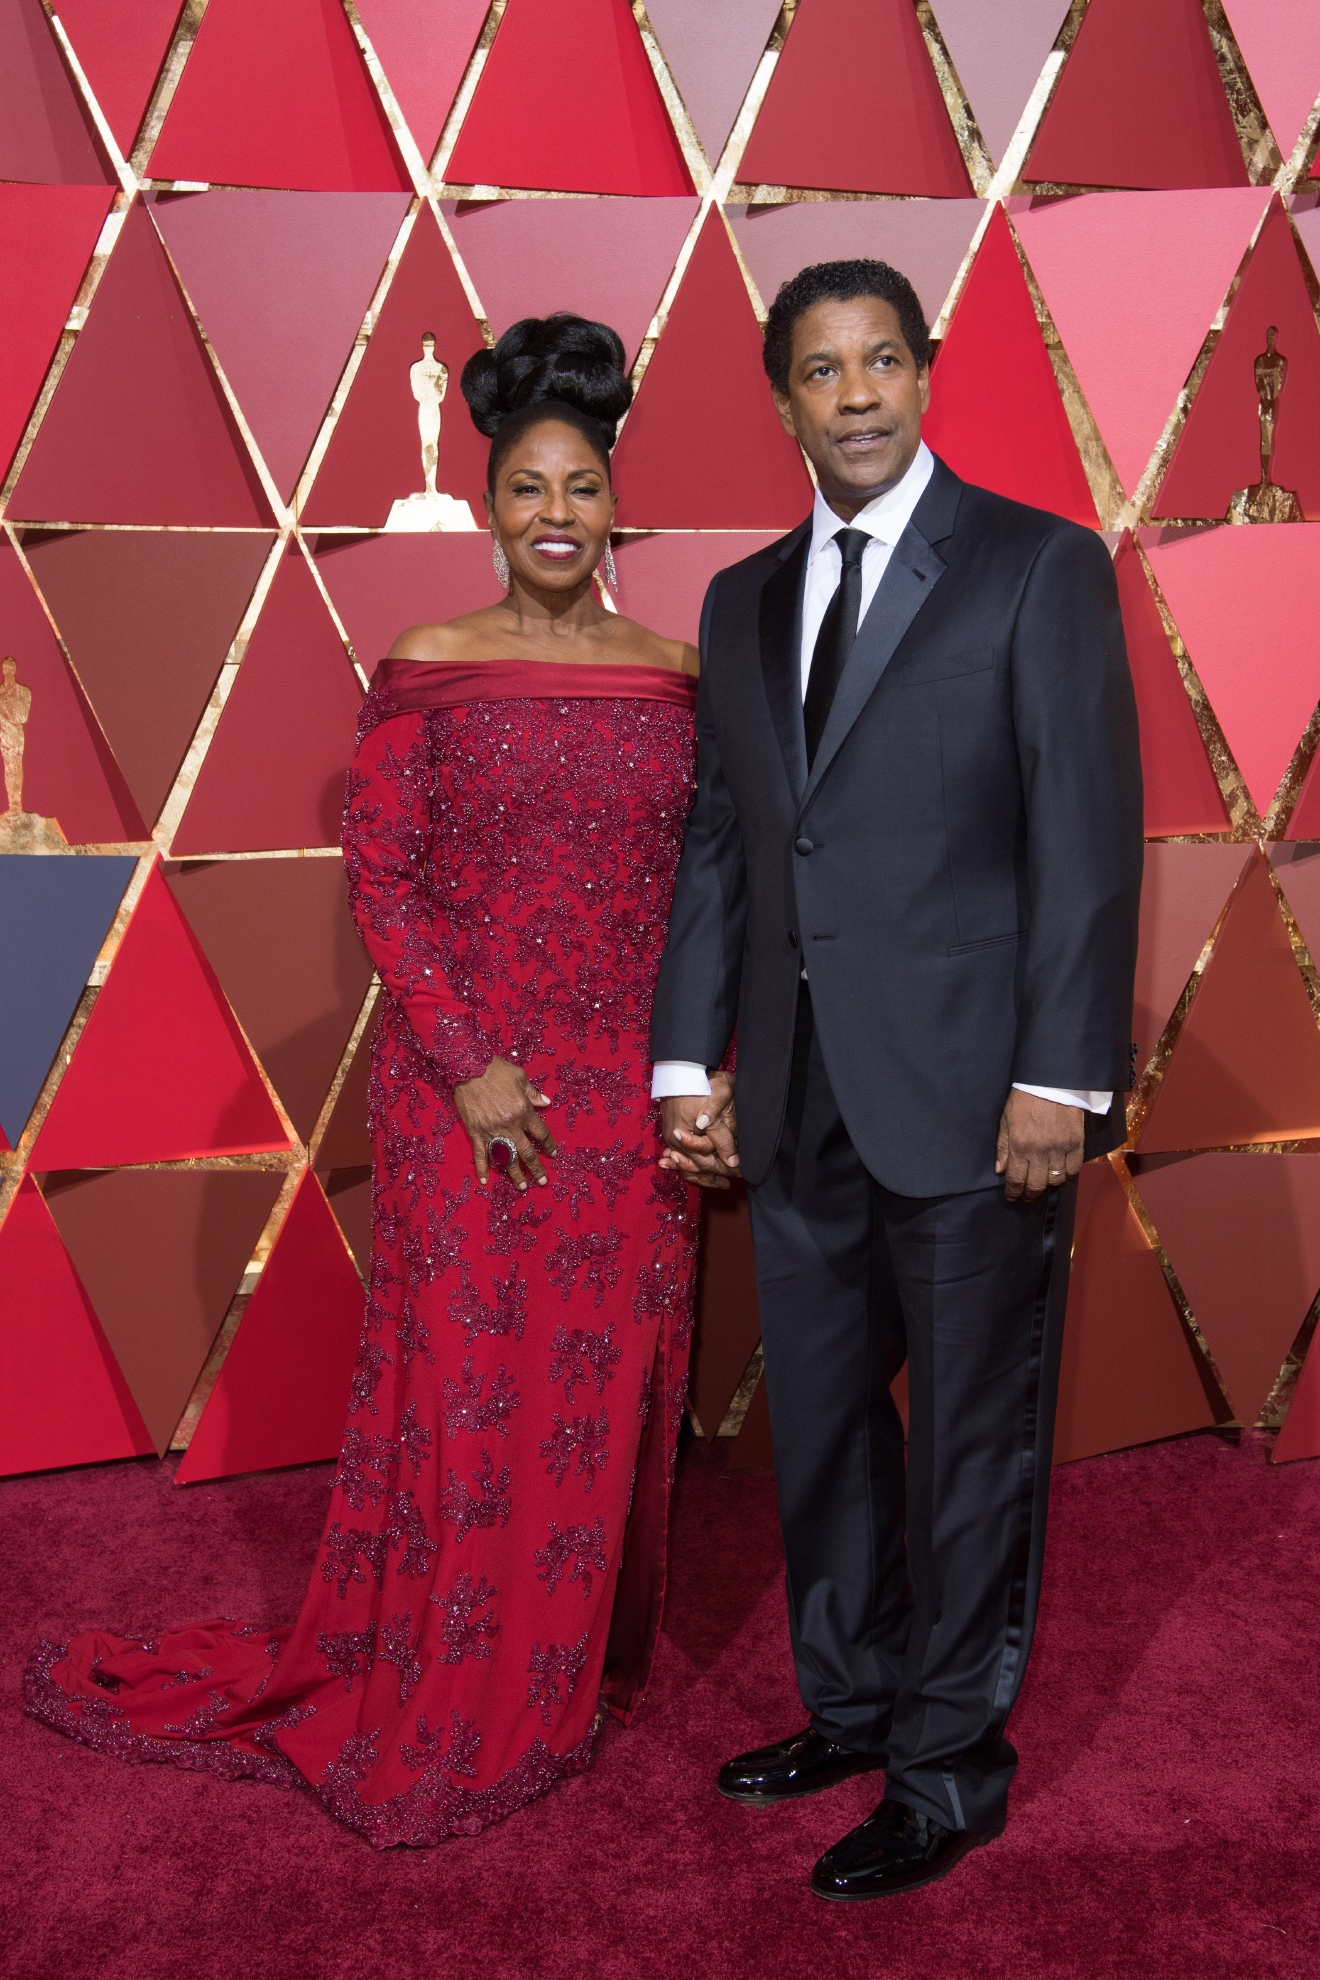 #18: Denzel Washington. Power couple alert! You can tell these two have done this before. (Image: AMPAS)